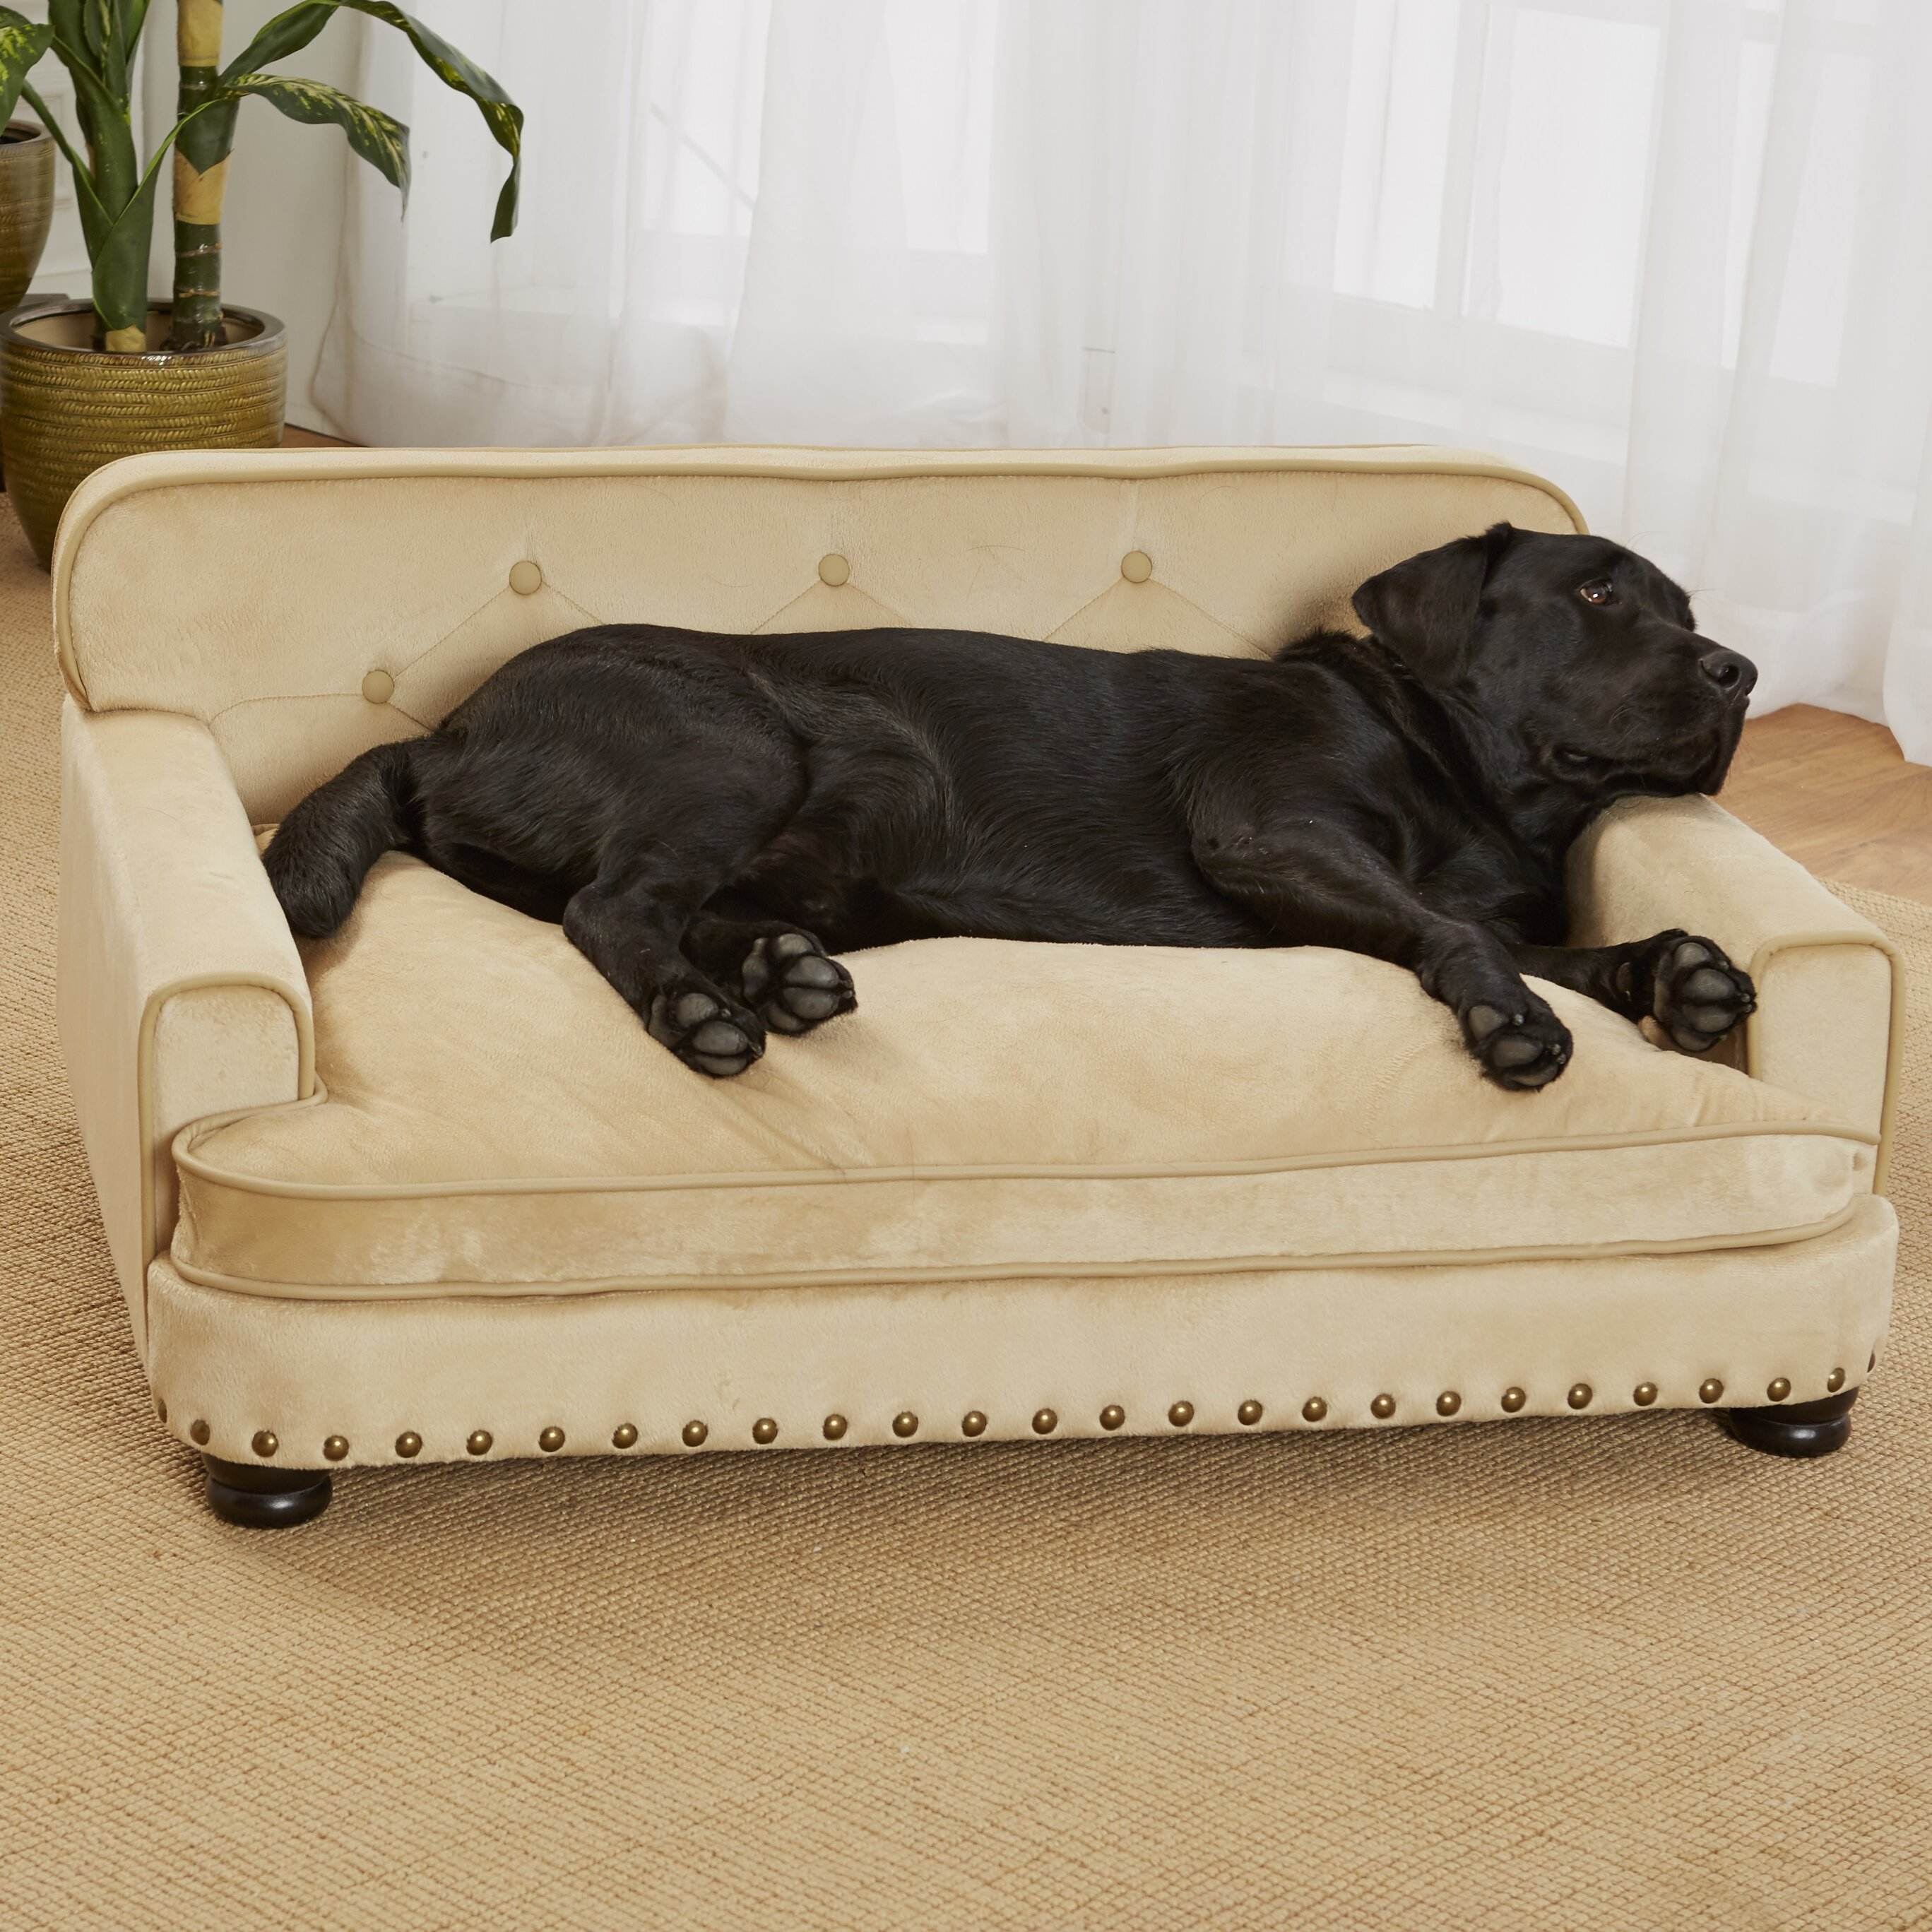 Enchanted home pet library dog sofa reviews wayfair for Big dog furniture